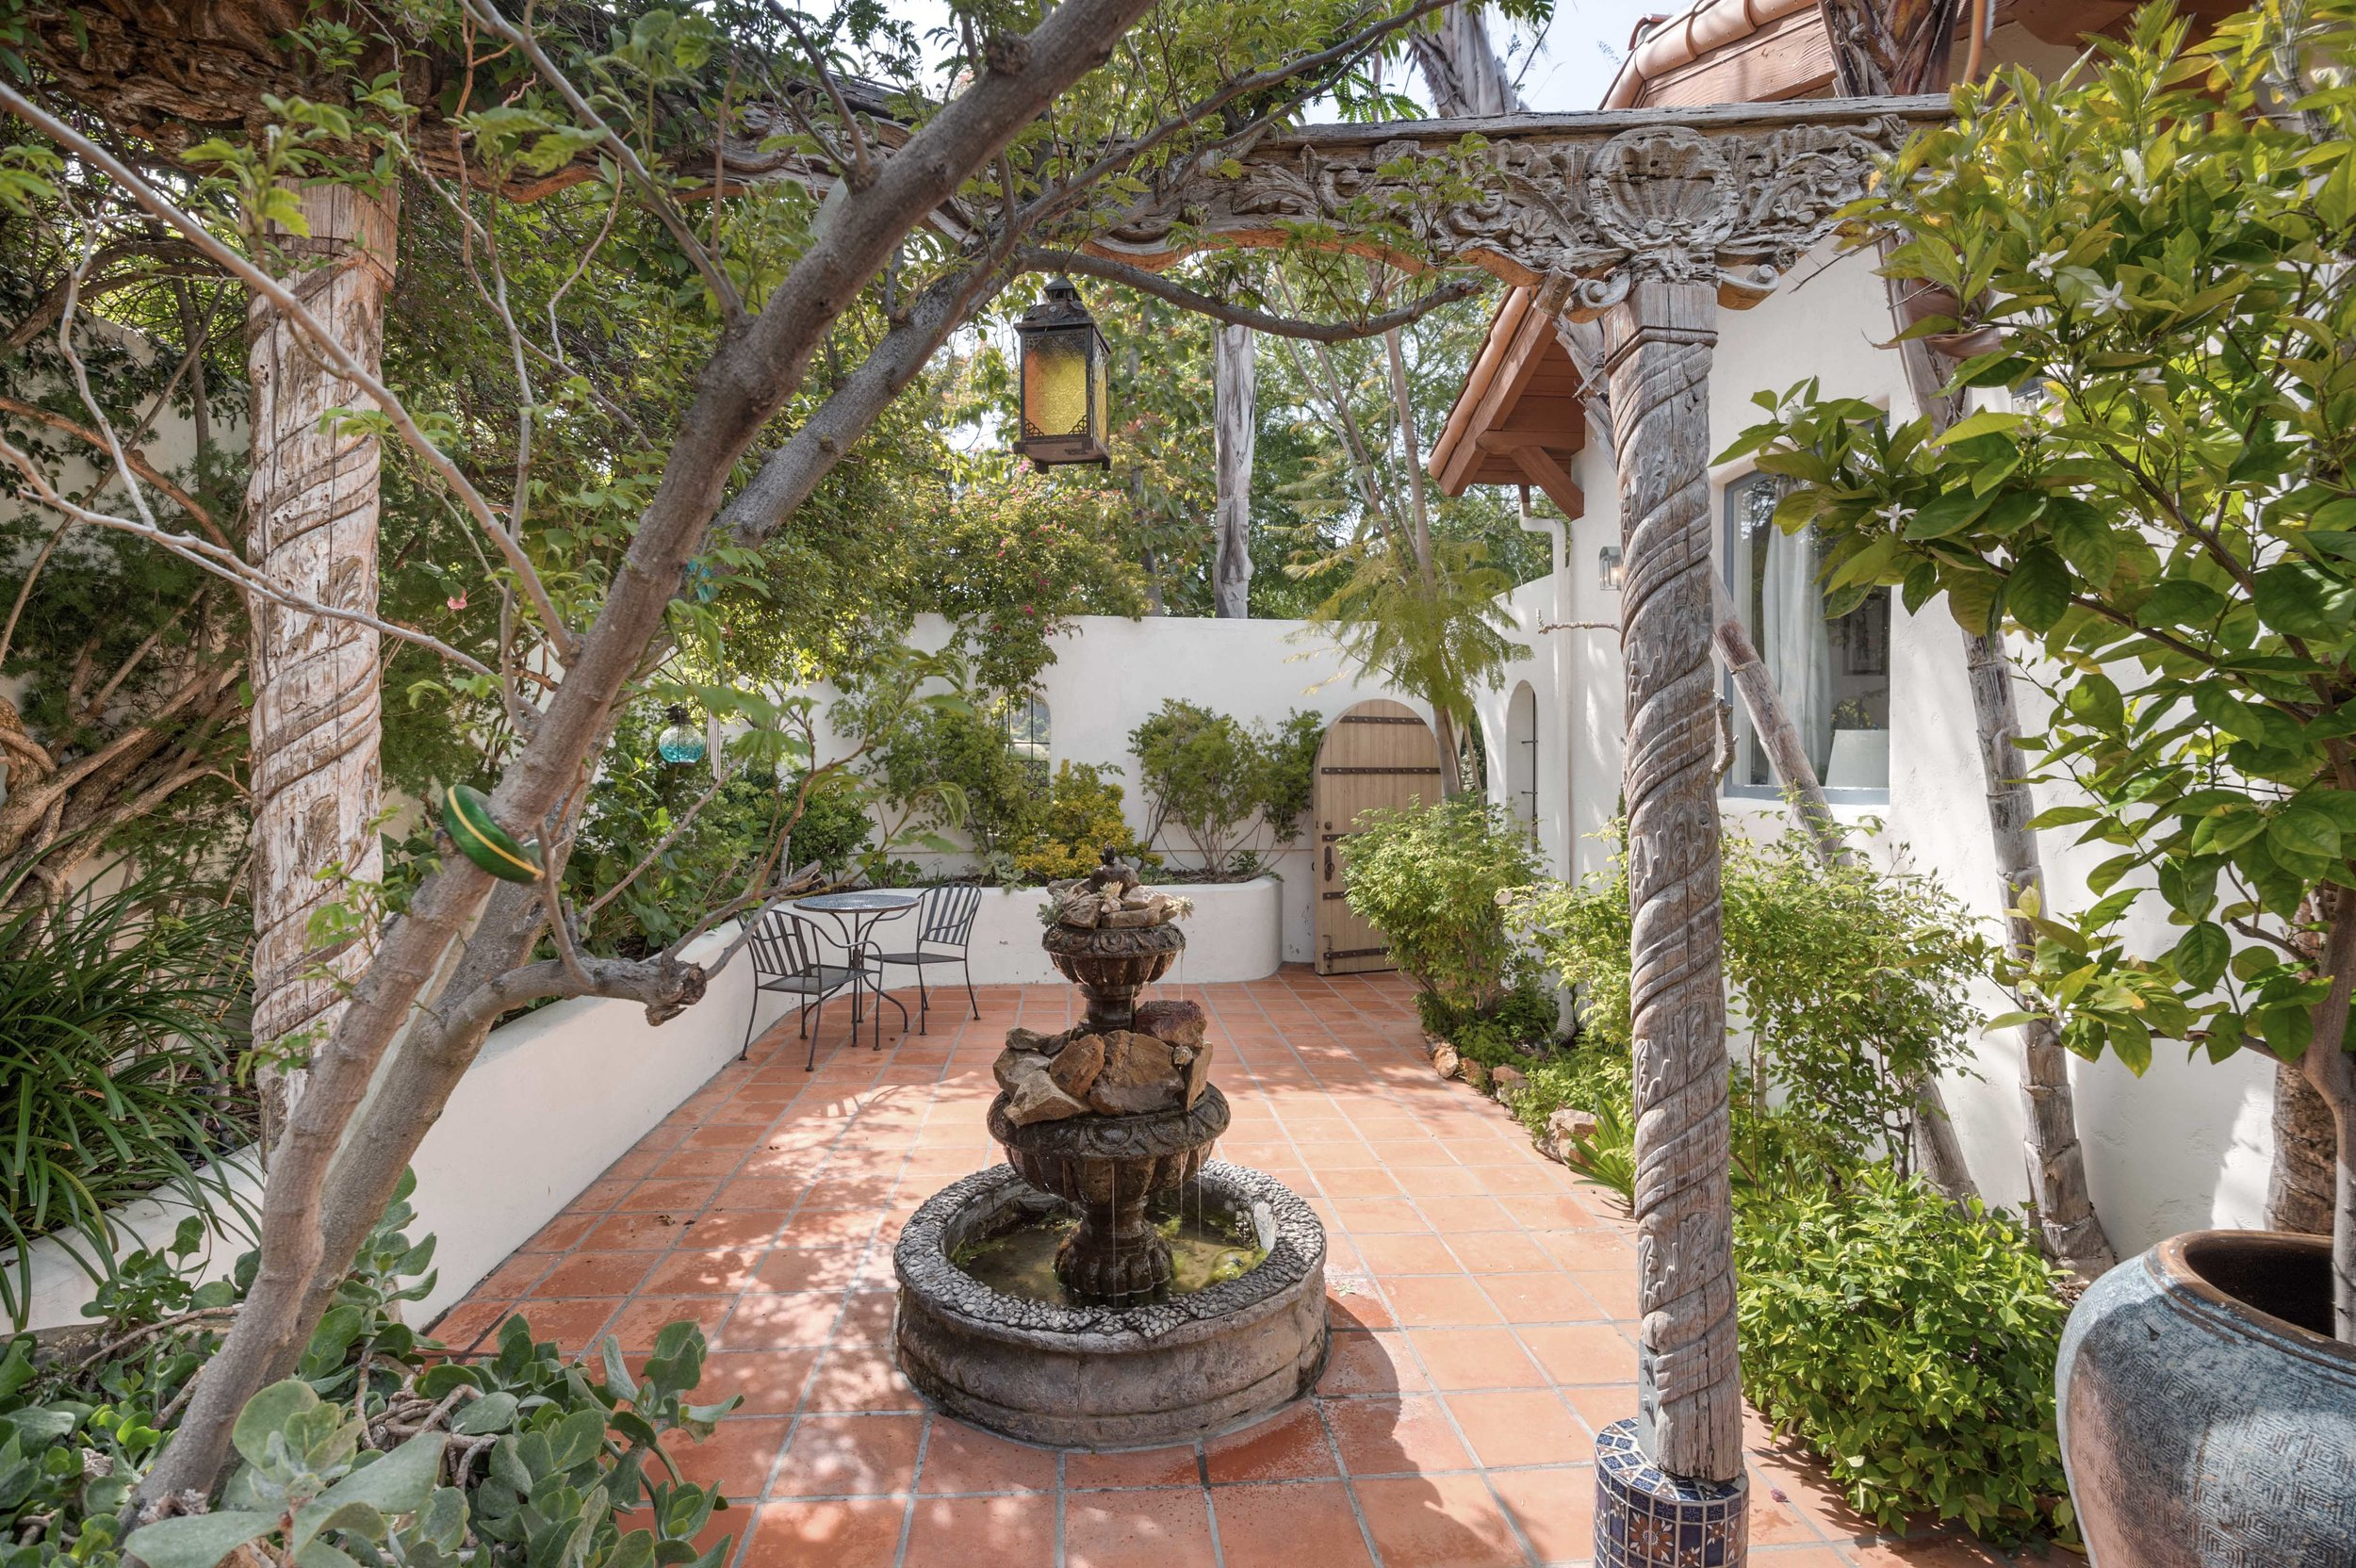 003 Courtyard fountain 20333 Reigate Road Topanga For Sale Lease The Malibu Life Team Luxury Real Estate.jpg